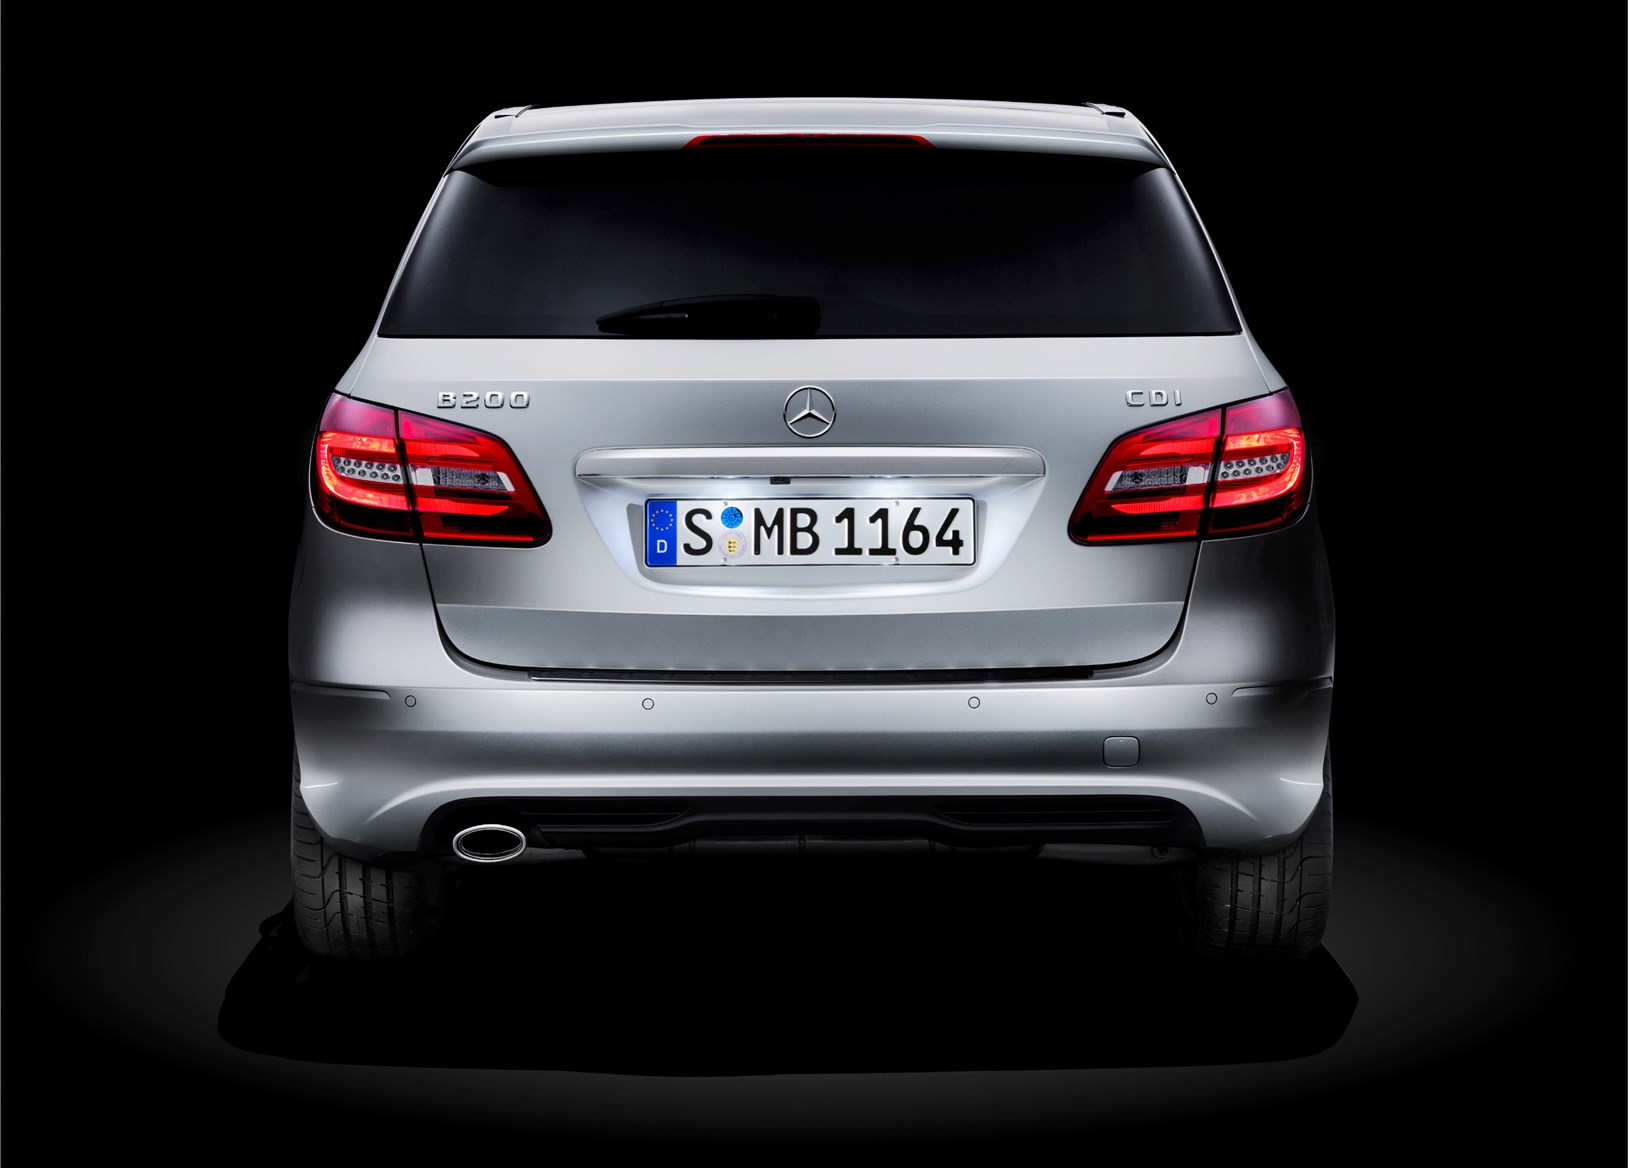 mercedes benz b class w246 b 180 cdi 109 hp. Black Bedroom Furniture Sets. Home Design Ideas